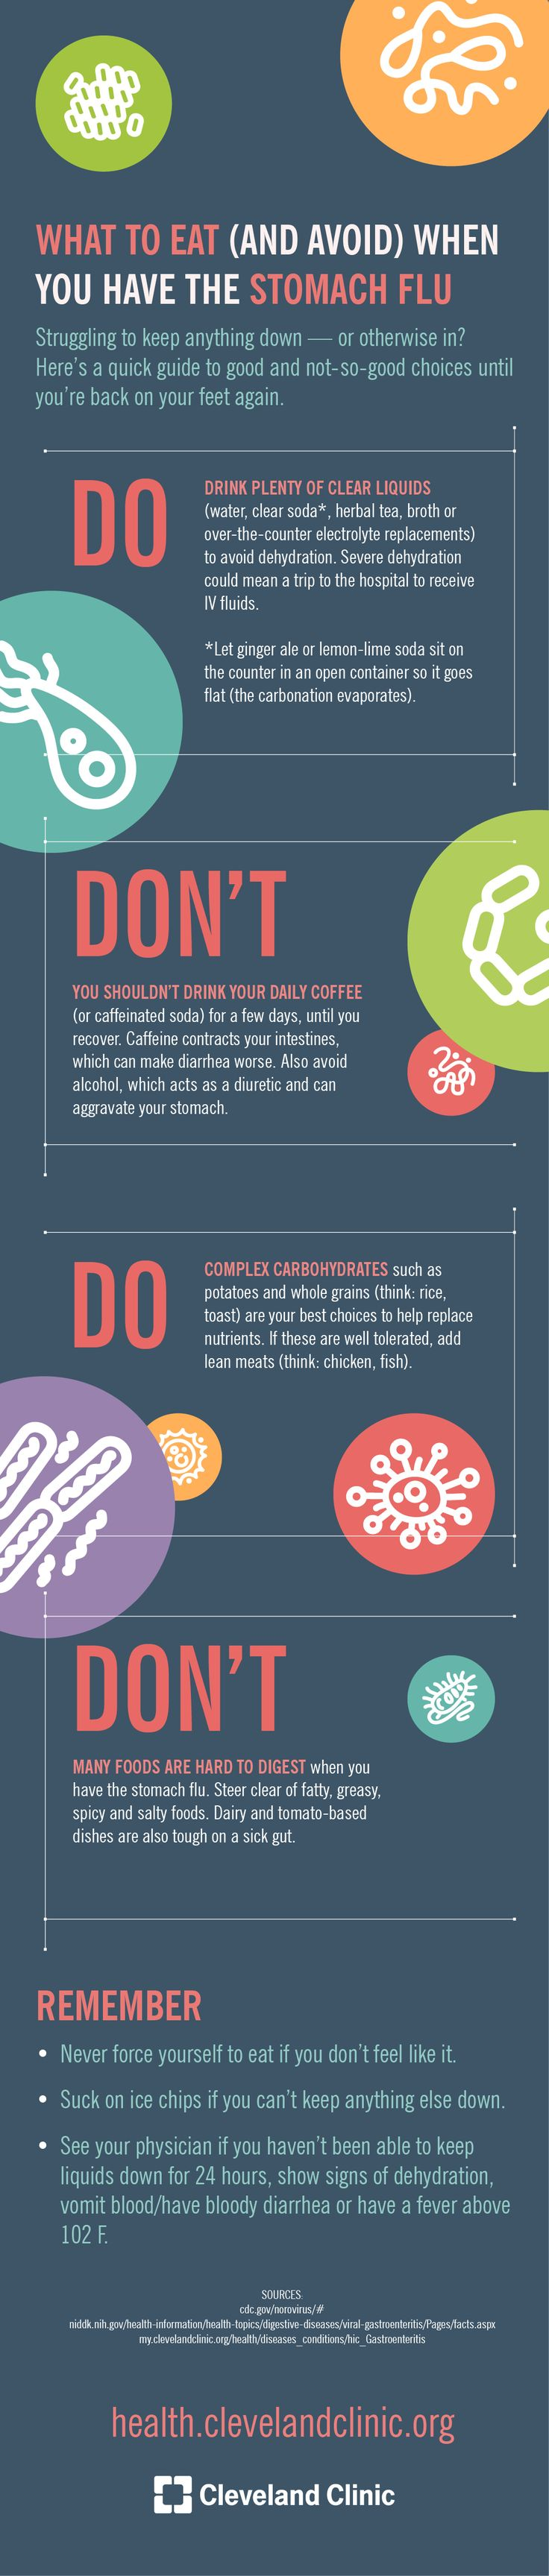 What to Eat (and Avoid) When You Have the Stomach Flu (Infographic)